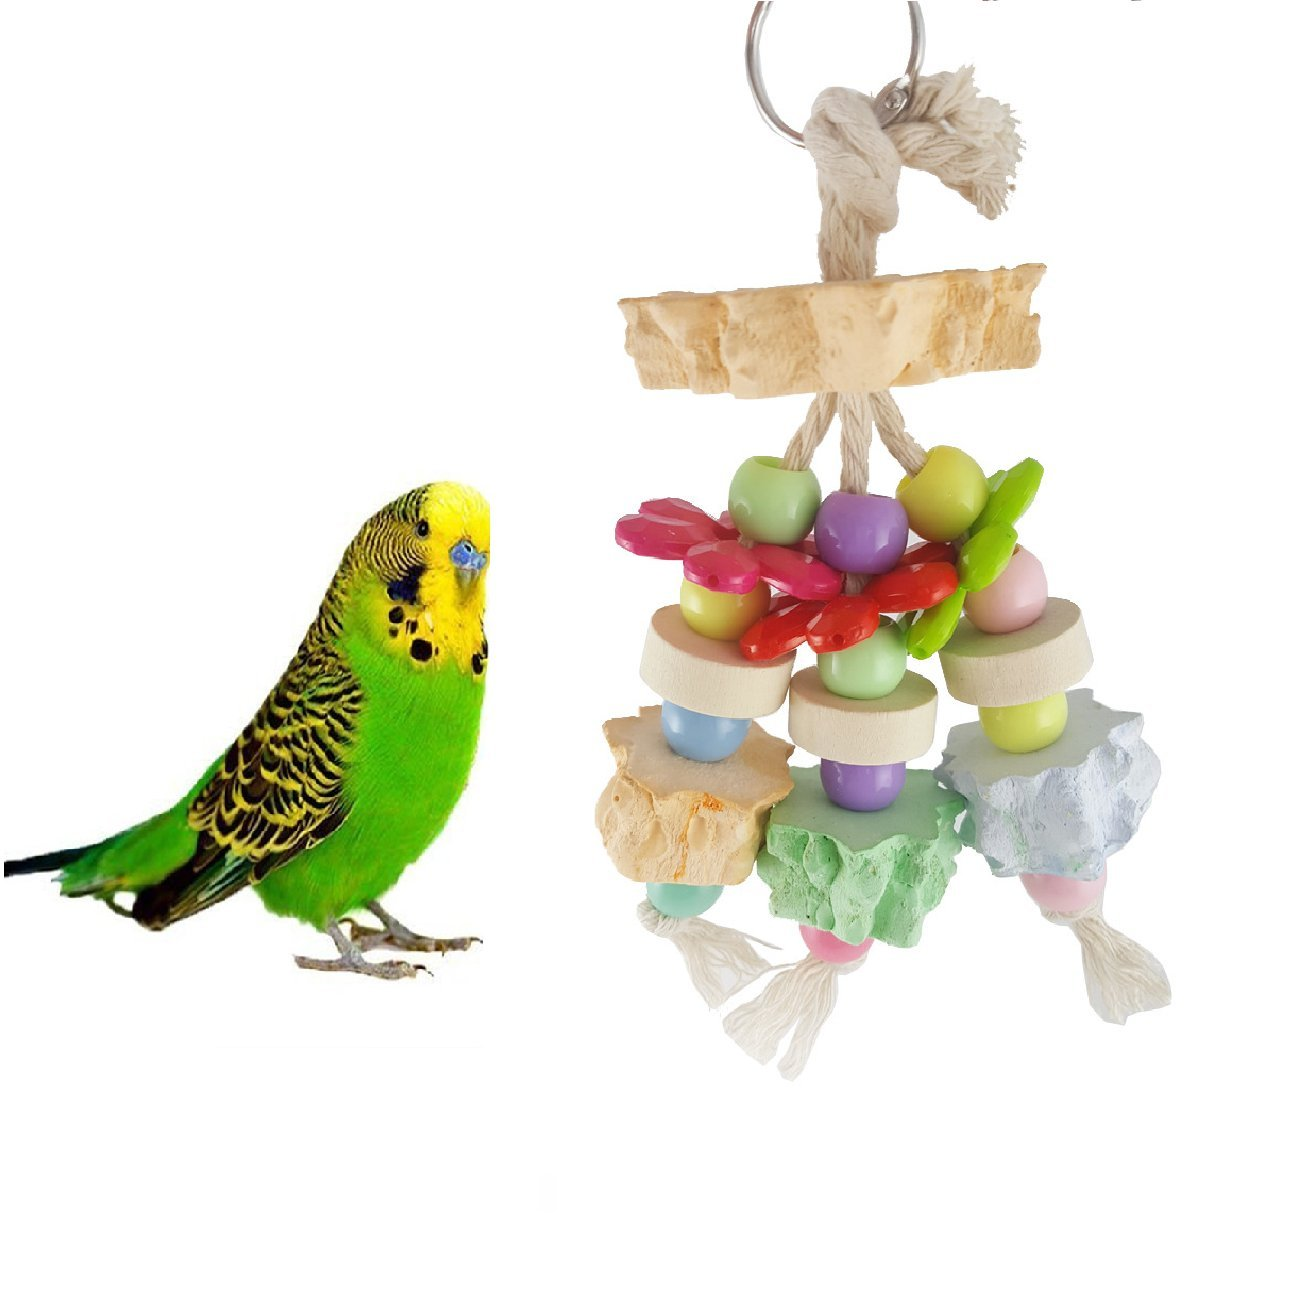 Stock Show 1Pc Pet Birds Wood Toy, Colurful Molar Stone Hanging & Chewing Toy Cage Accessories for Small Medium Parrot/Macaw/Cockatiels